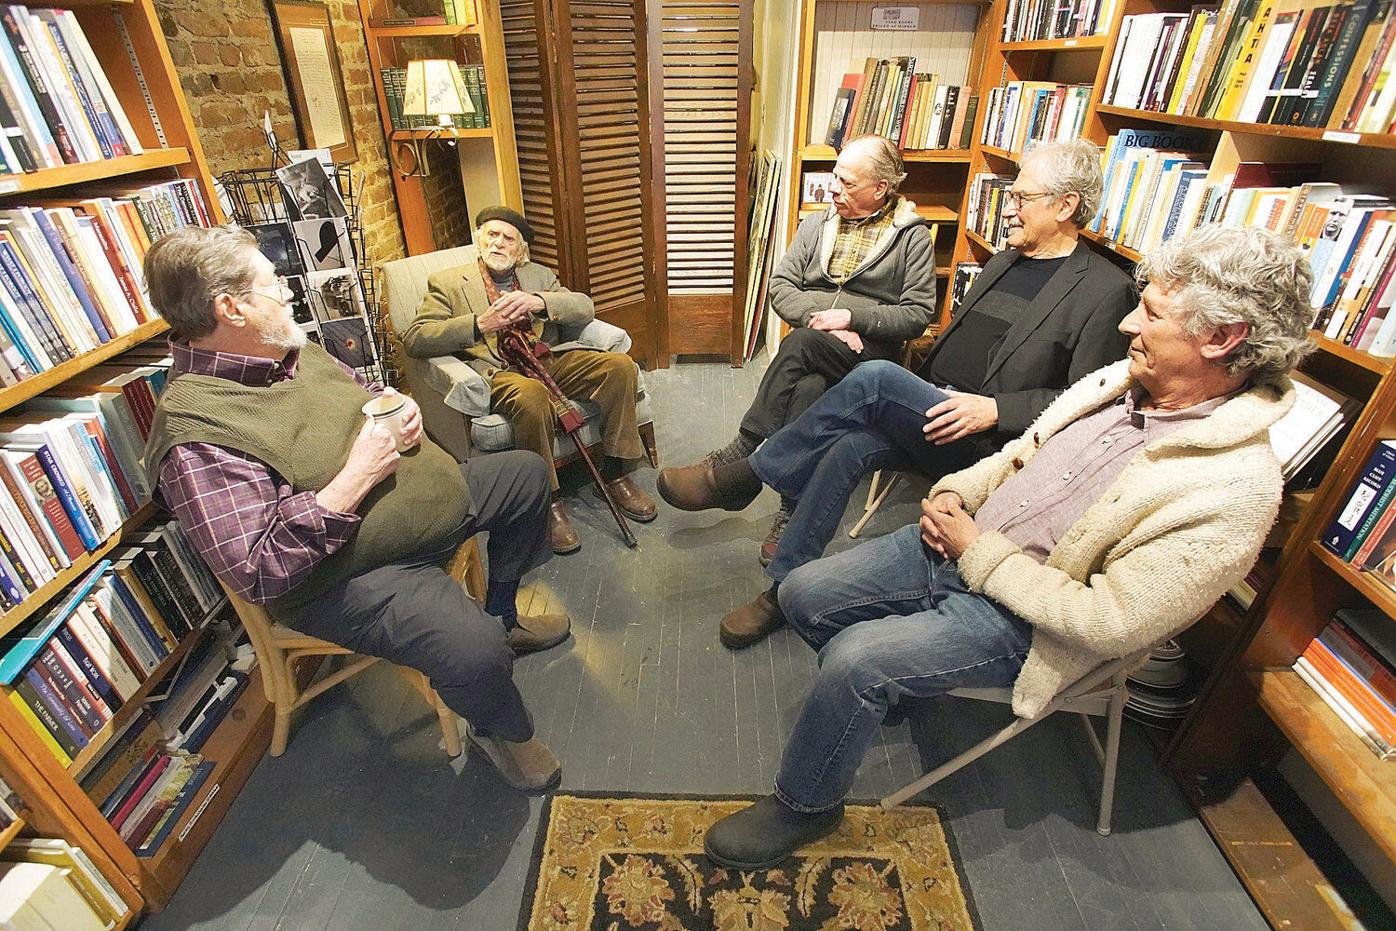 'Five Wise Guys' celebrate life's third act